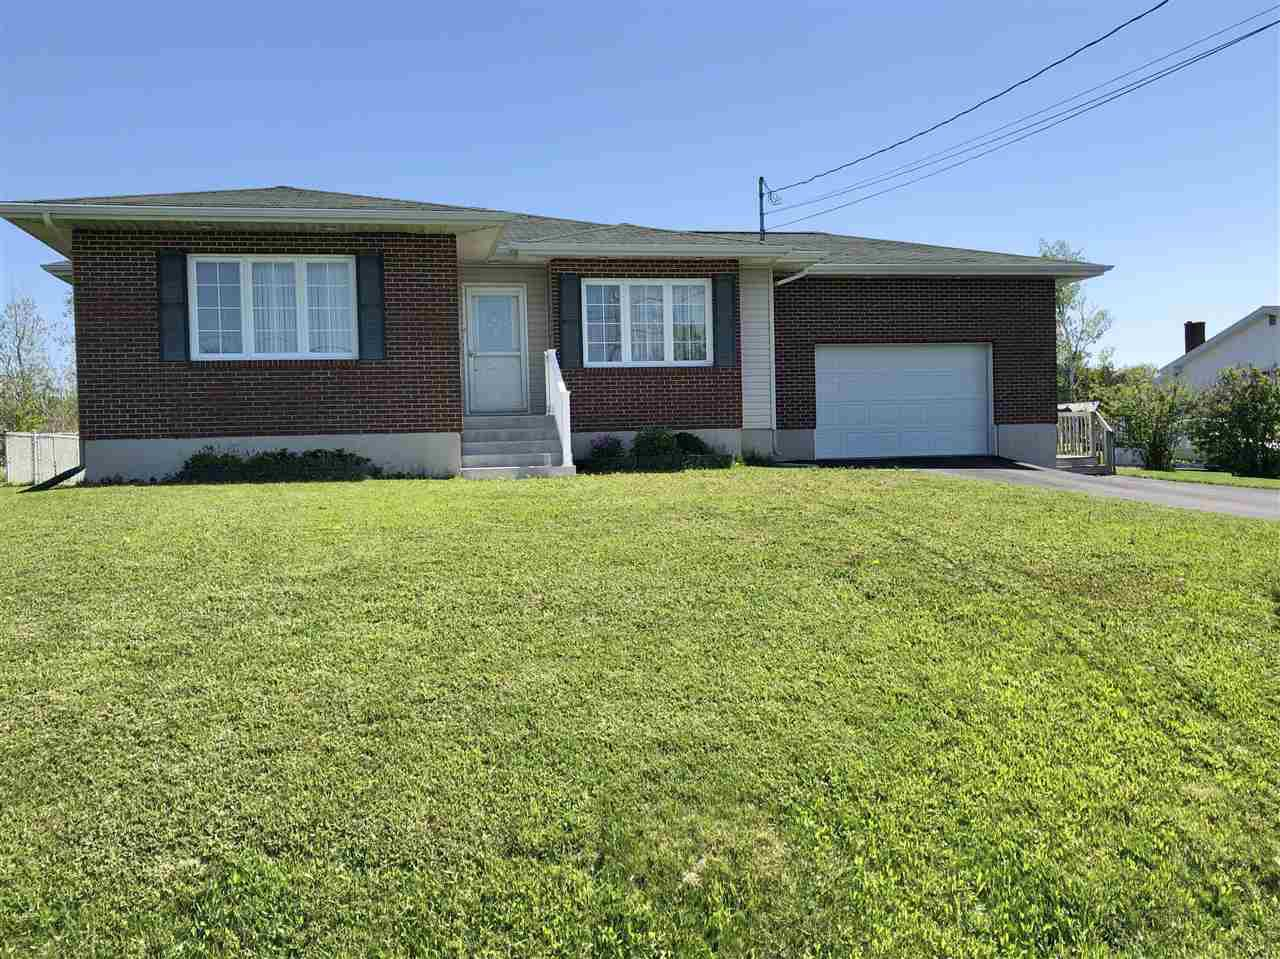 Main Photo: 324 Musgrave Lane in North Sydney: 205-North Sydney Residential for sale (Cape Breton)  : MLS®# 202009763